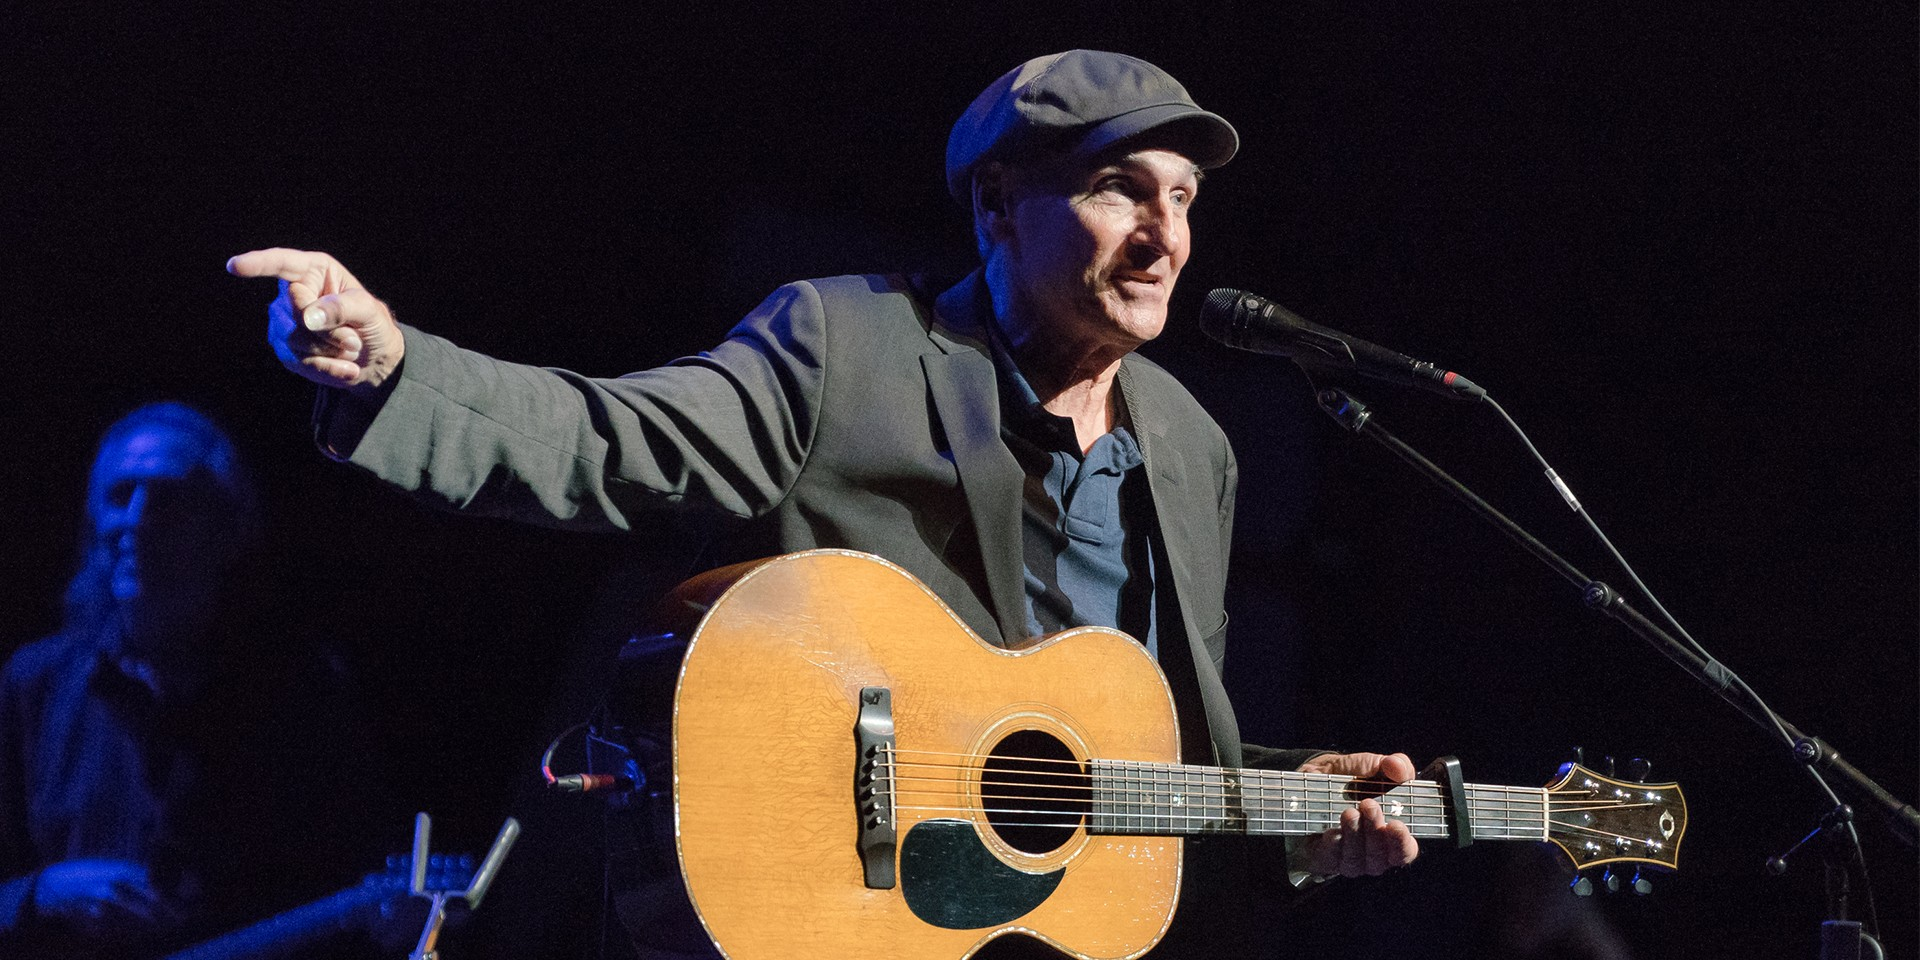 GIG REPORT: James Taylor showcases his acclaimed body of work in his recent Singapore show